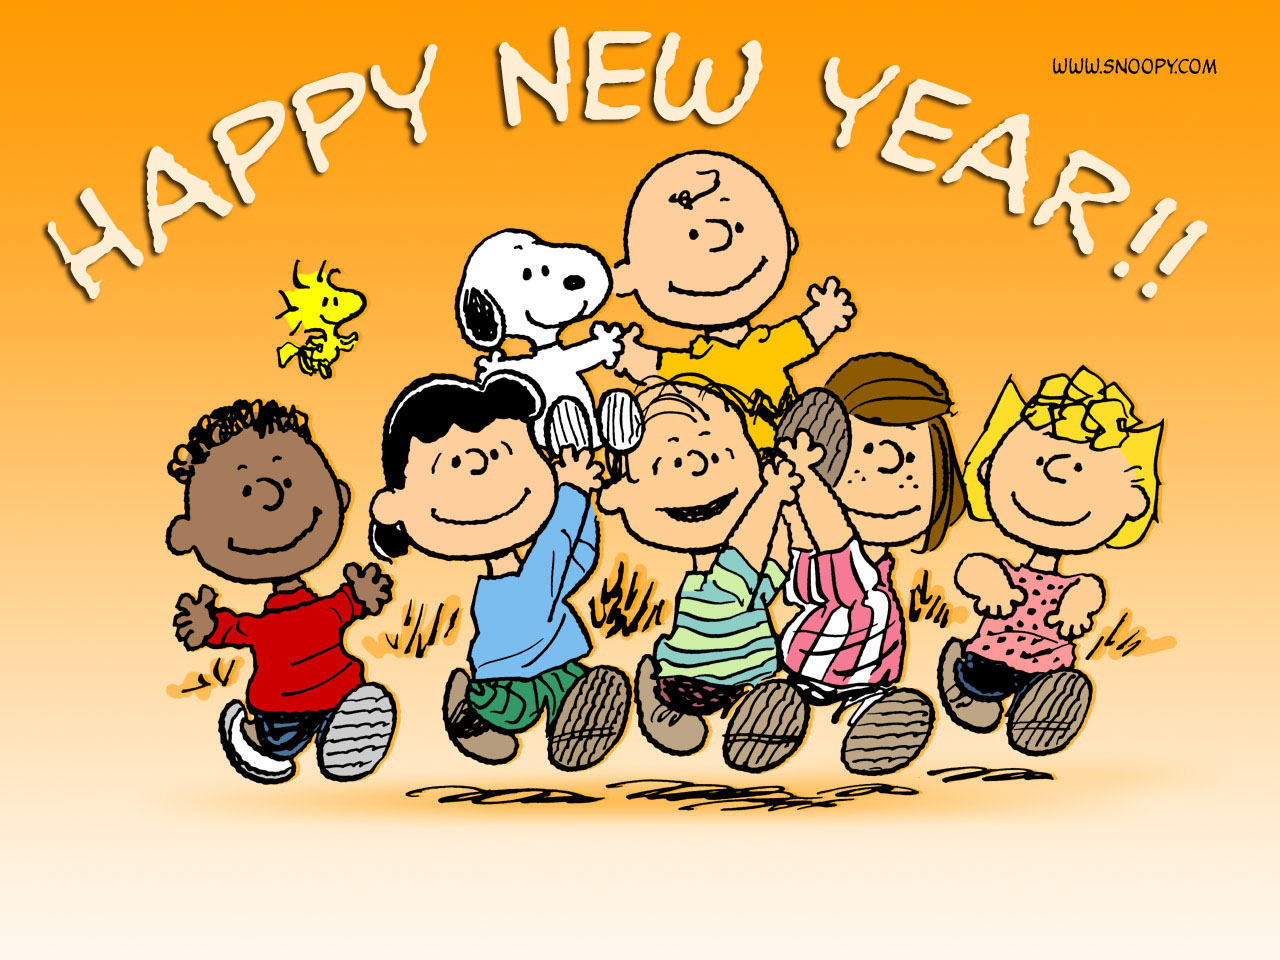 funny new year sms sweet and nice new year sms and text messages. 1280 x 960.Happy Nice New Year Messages Sms Jokes